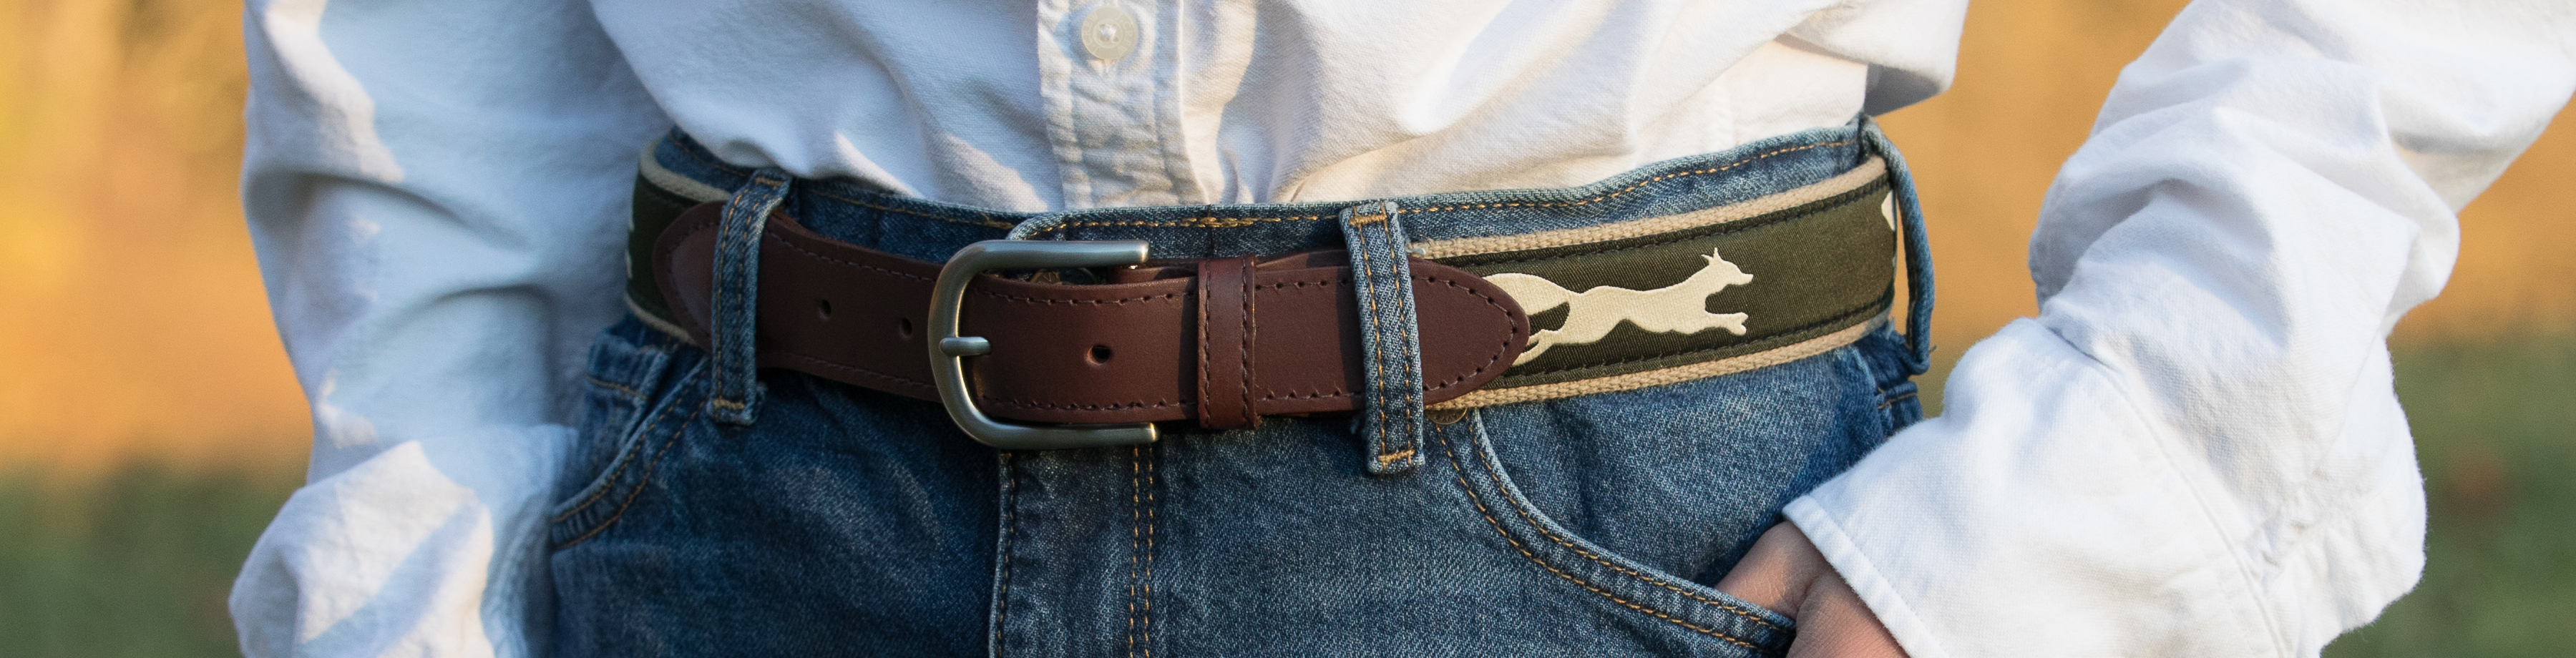 3600-youth-belts-1.jpg